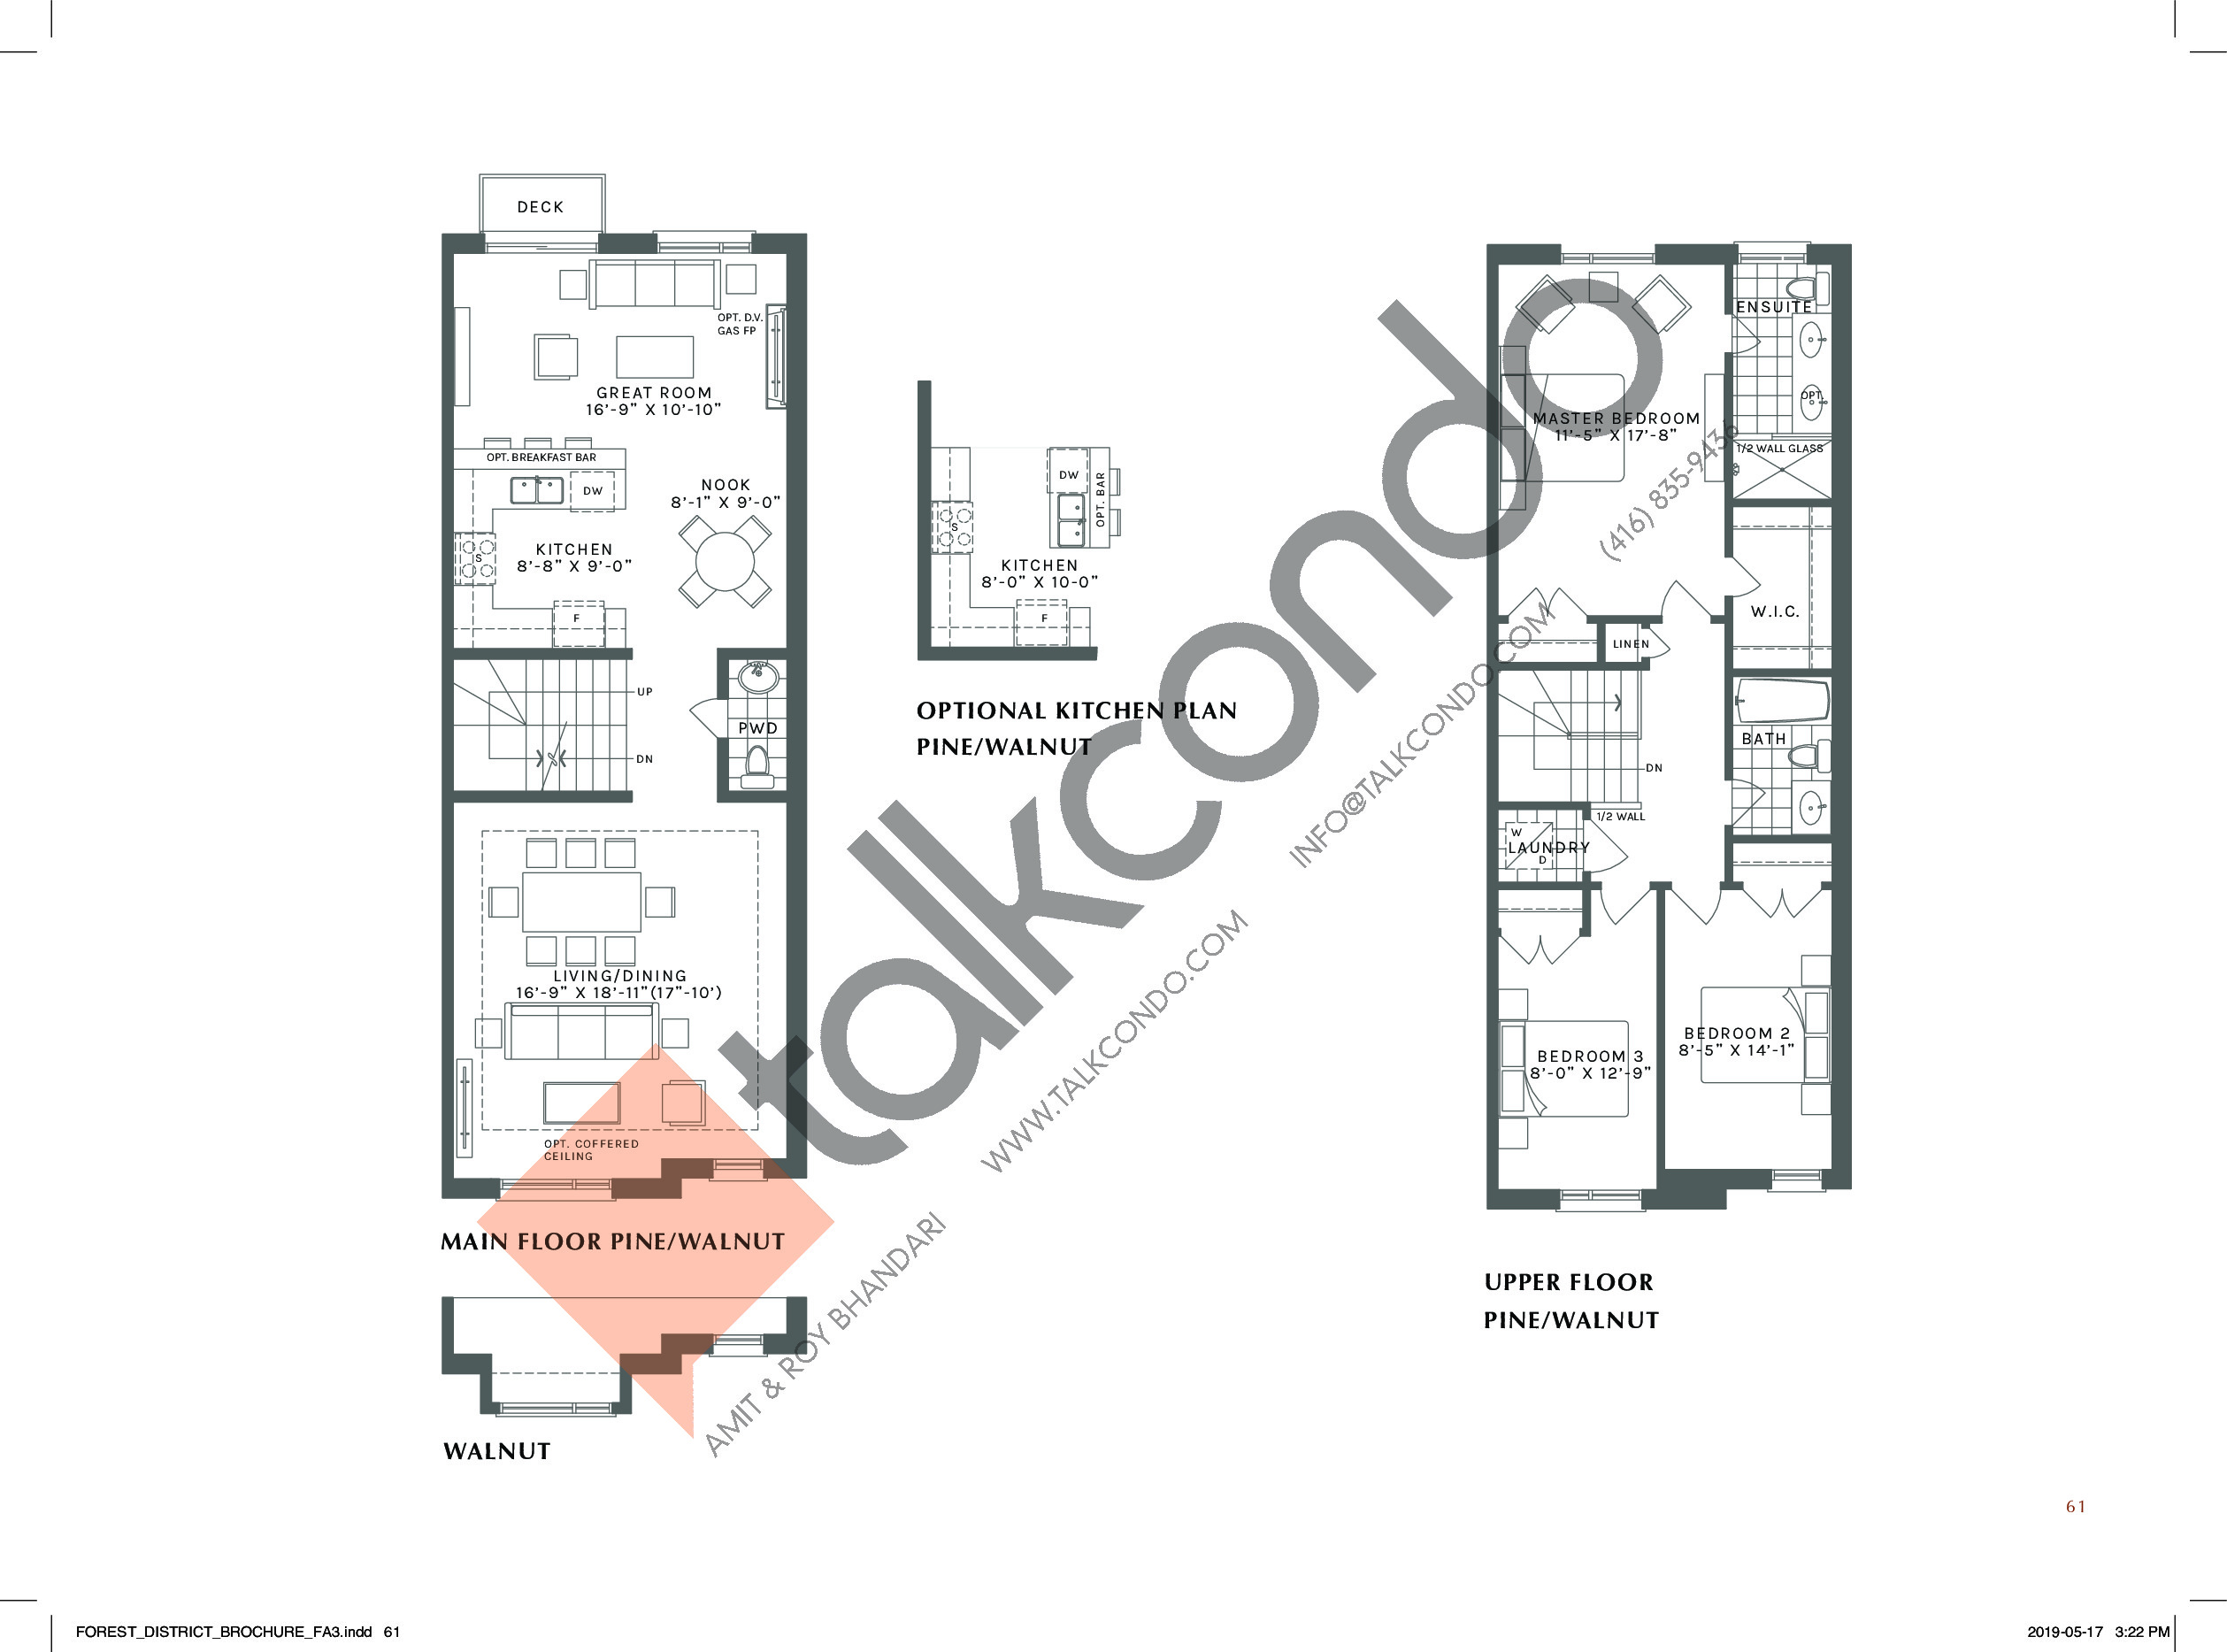 The Pine/Walnut (2/2) Floor Plan at Forest District Towns - 2410 sq.ft